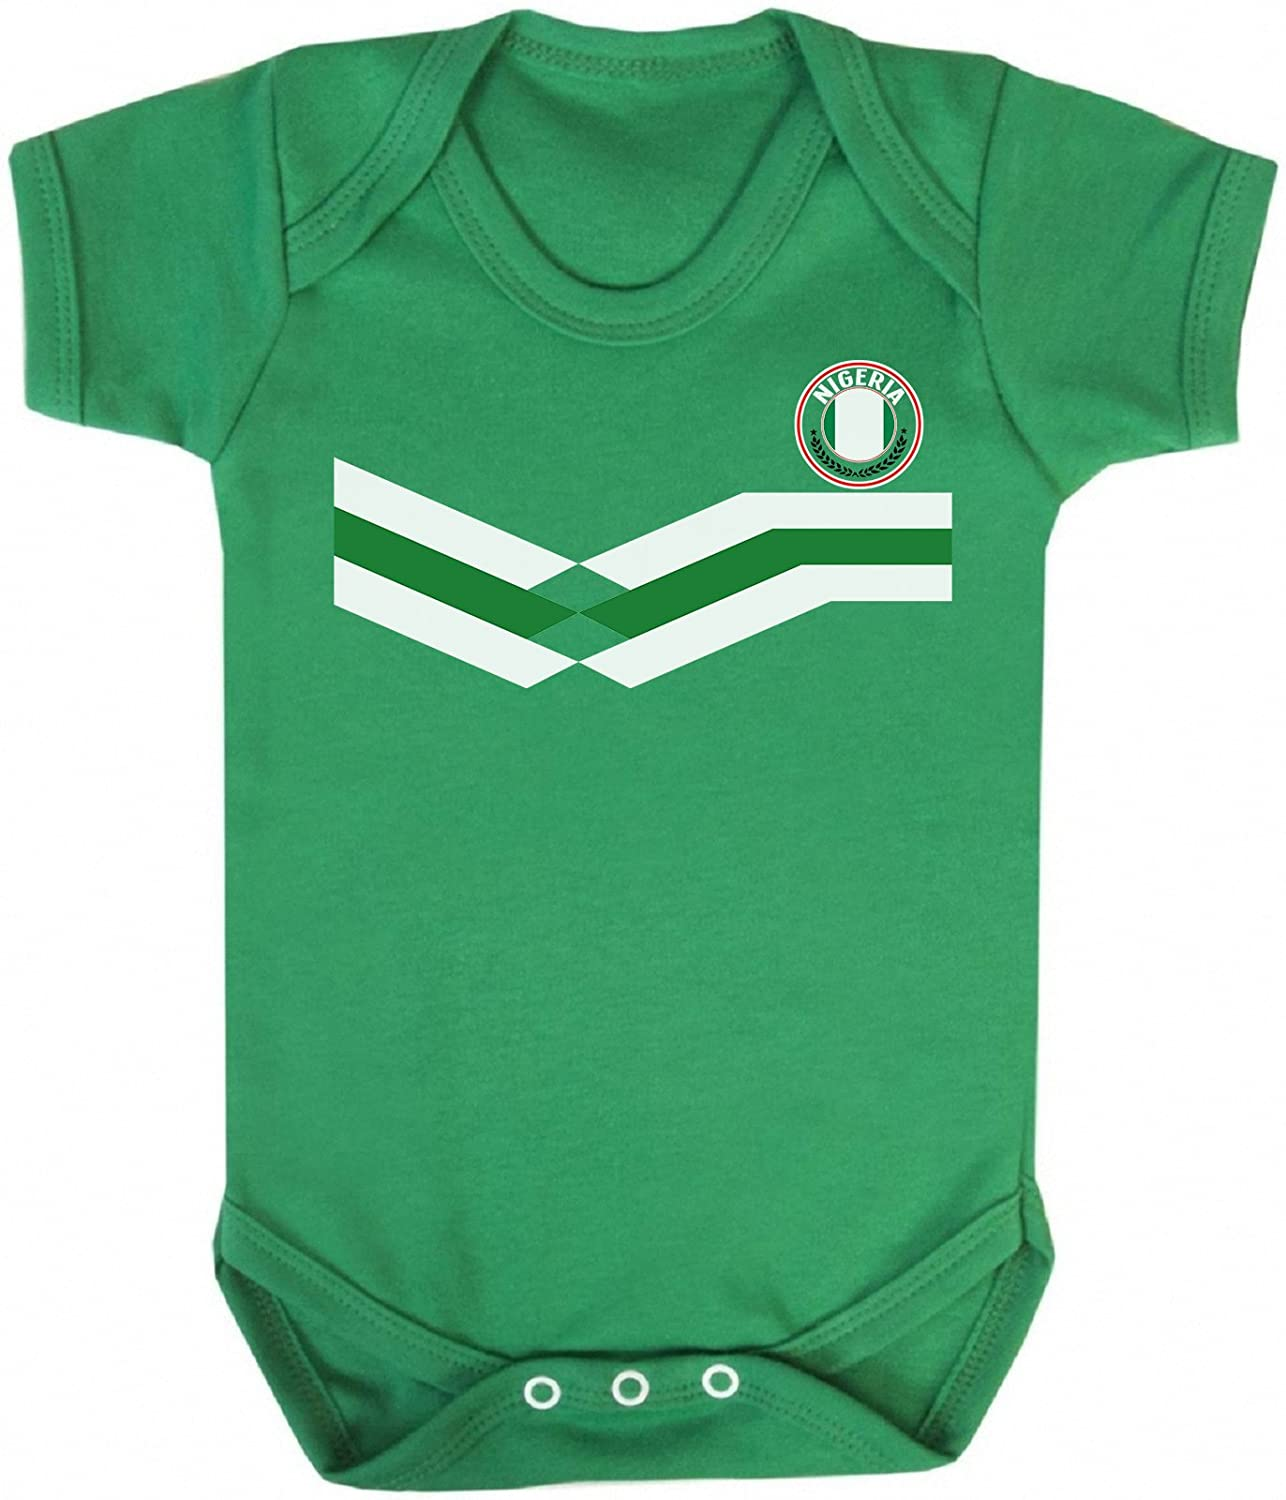 Nigeria New Retro Strip Bodysuit fü r Kinder Fussball-Weltmeisterschaft 2018